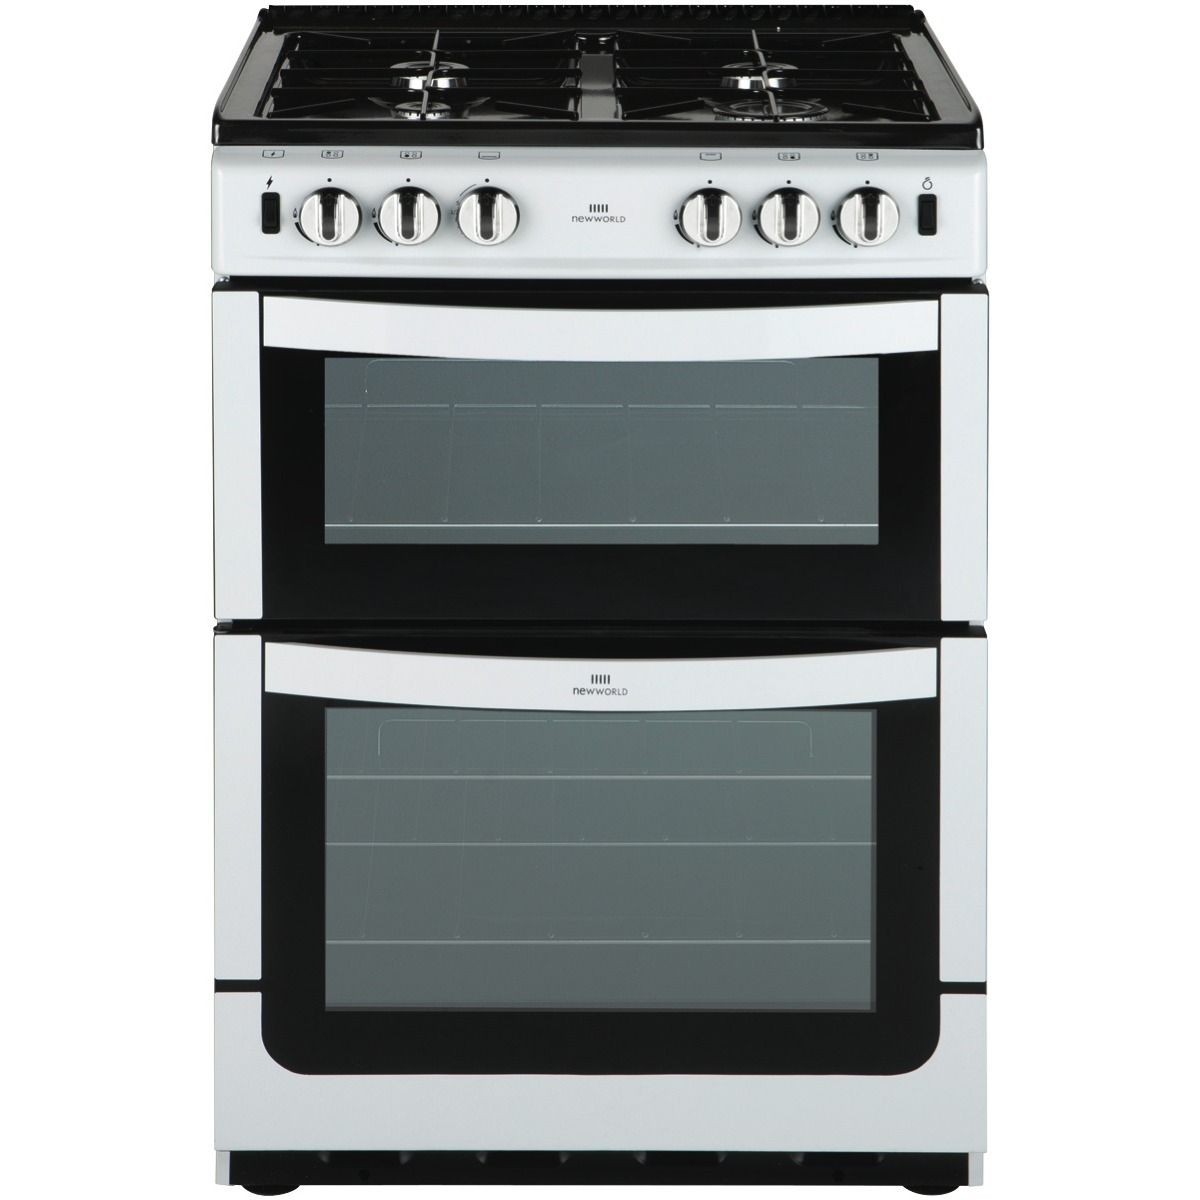 Online For New World Nw601gtcwhilpg 60cm Gas Upright Cooker And More At The